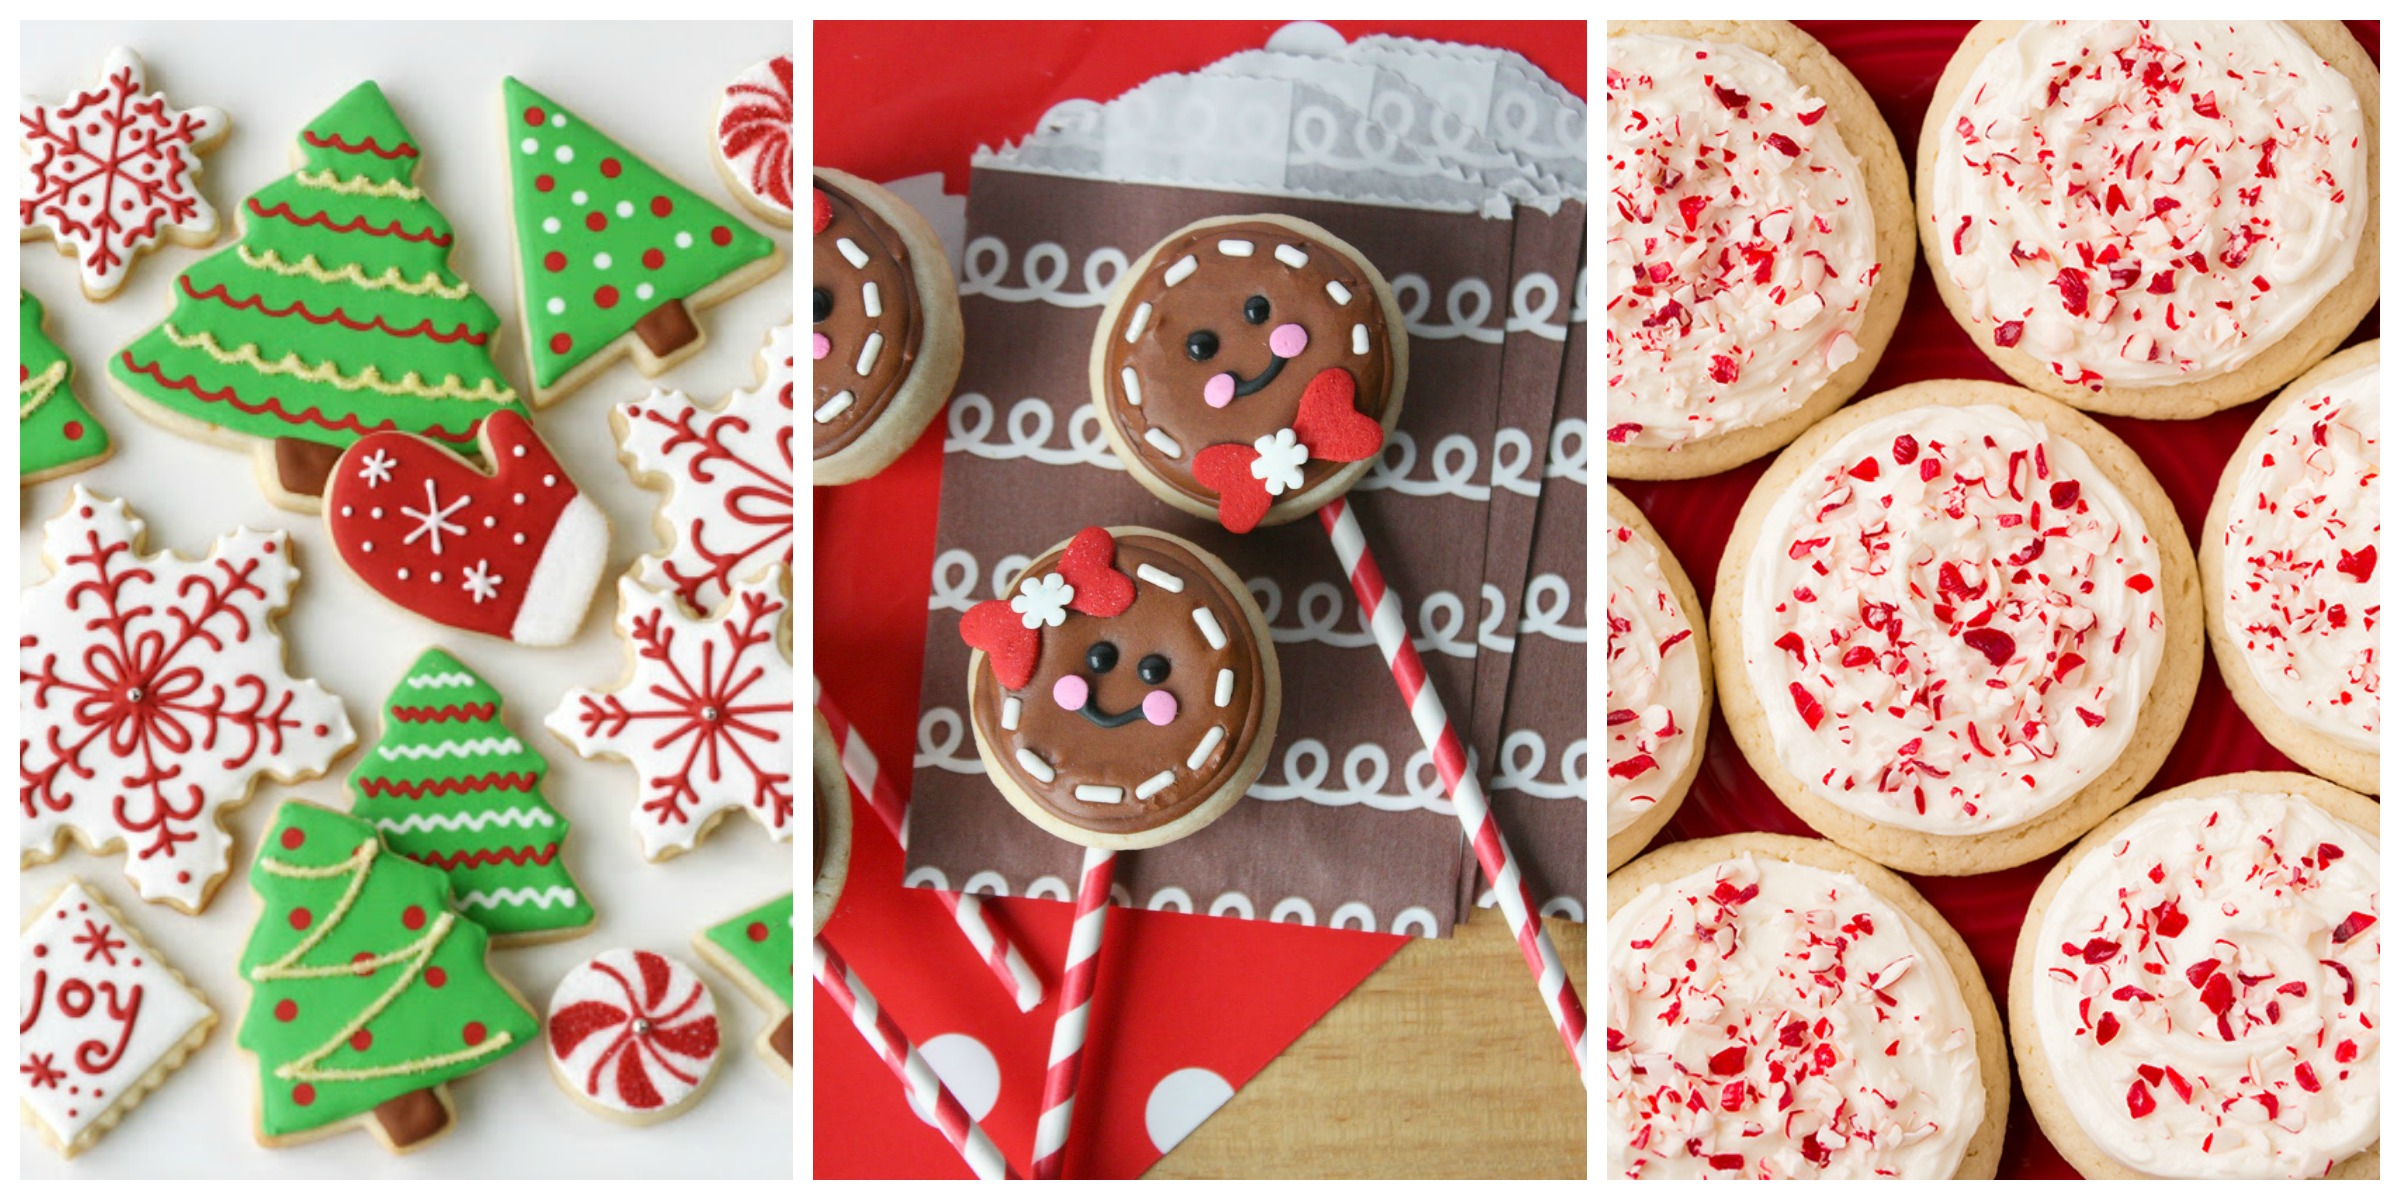 25 easy christmas sugar cookies recipes decorating - Decorating Christmas Cookies